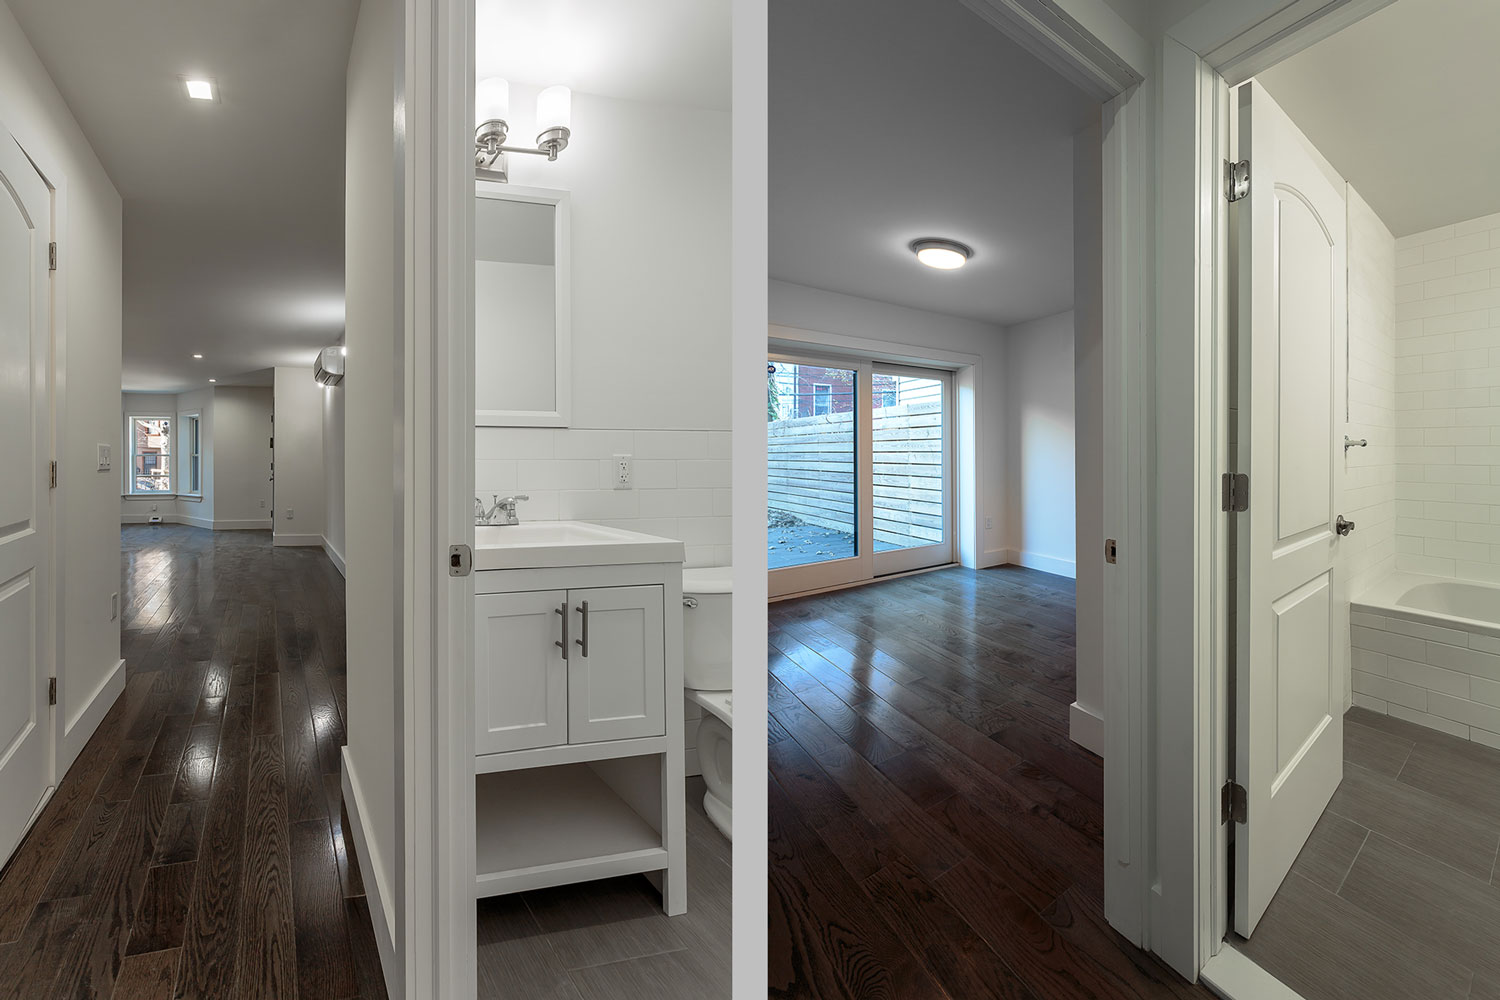 Each apartment at this Decatur Street townhouse renovation has two bathrooms and in-unit laundry